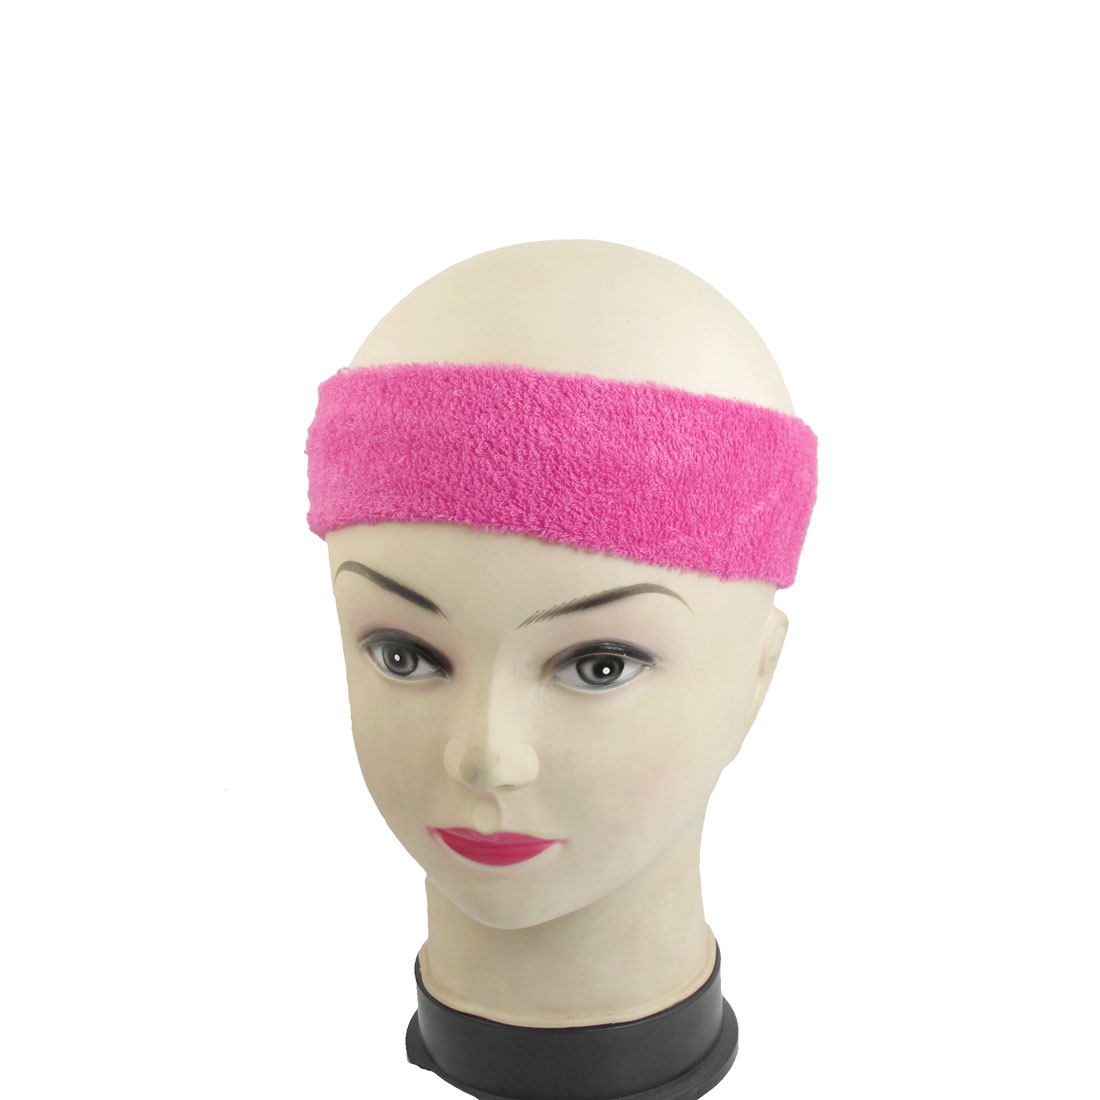 2 Pcs Magenta 34cm Length Stretchy Athletic Sport Headband for Ladies